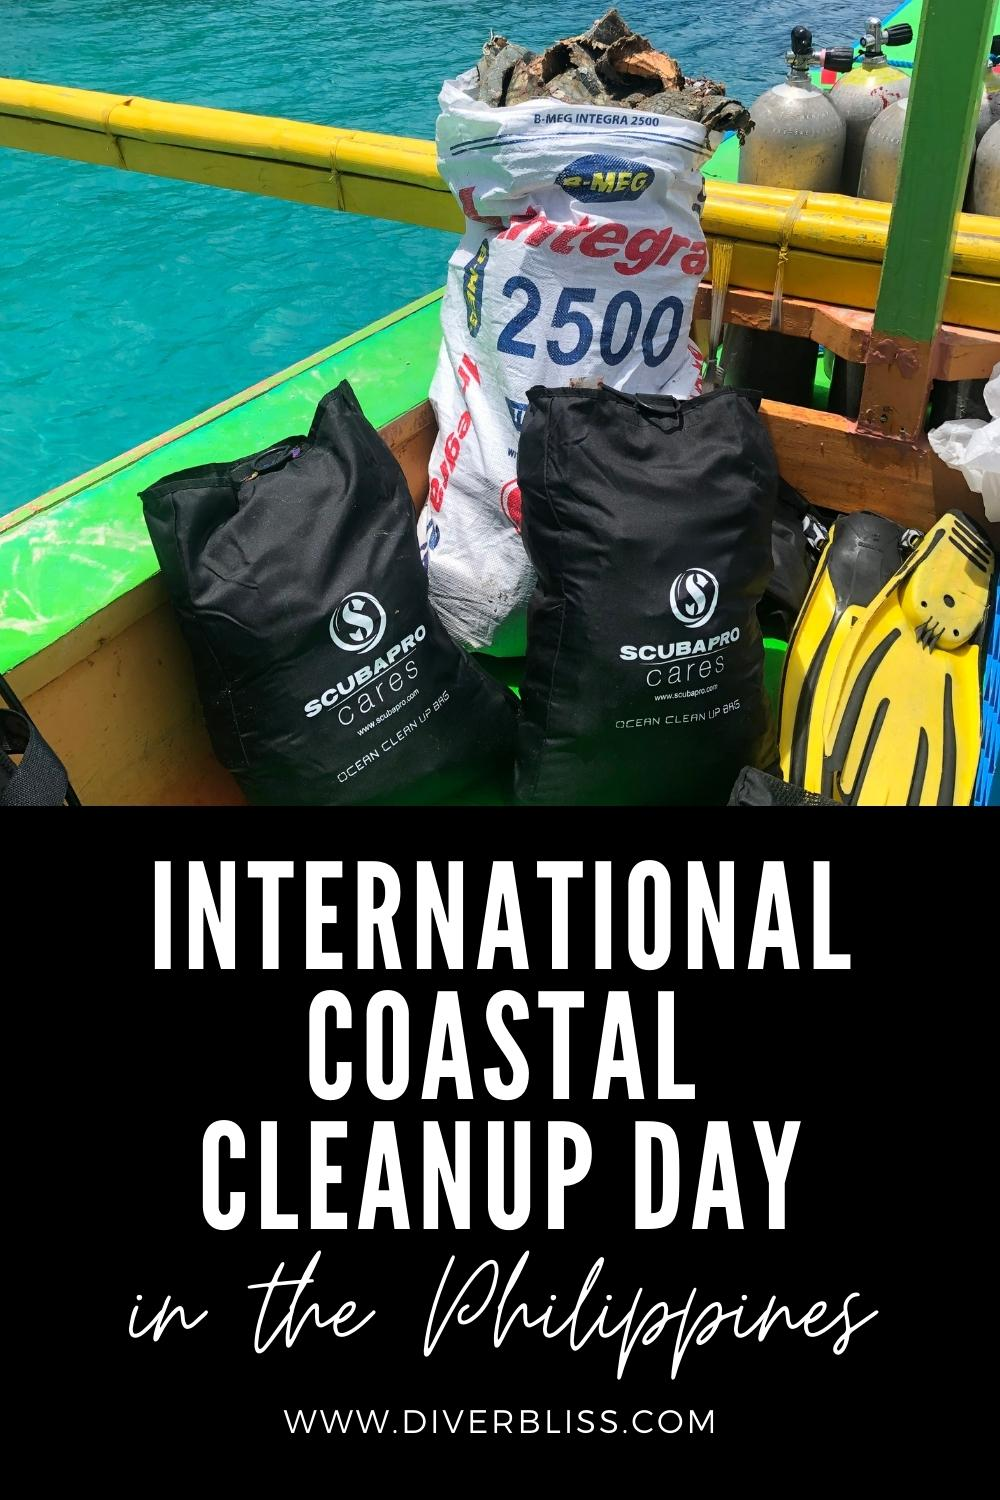 International Coastal Cleanup Day in the Philippines